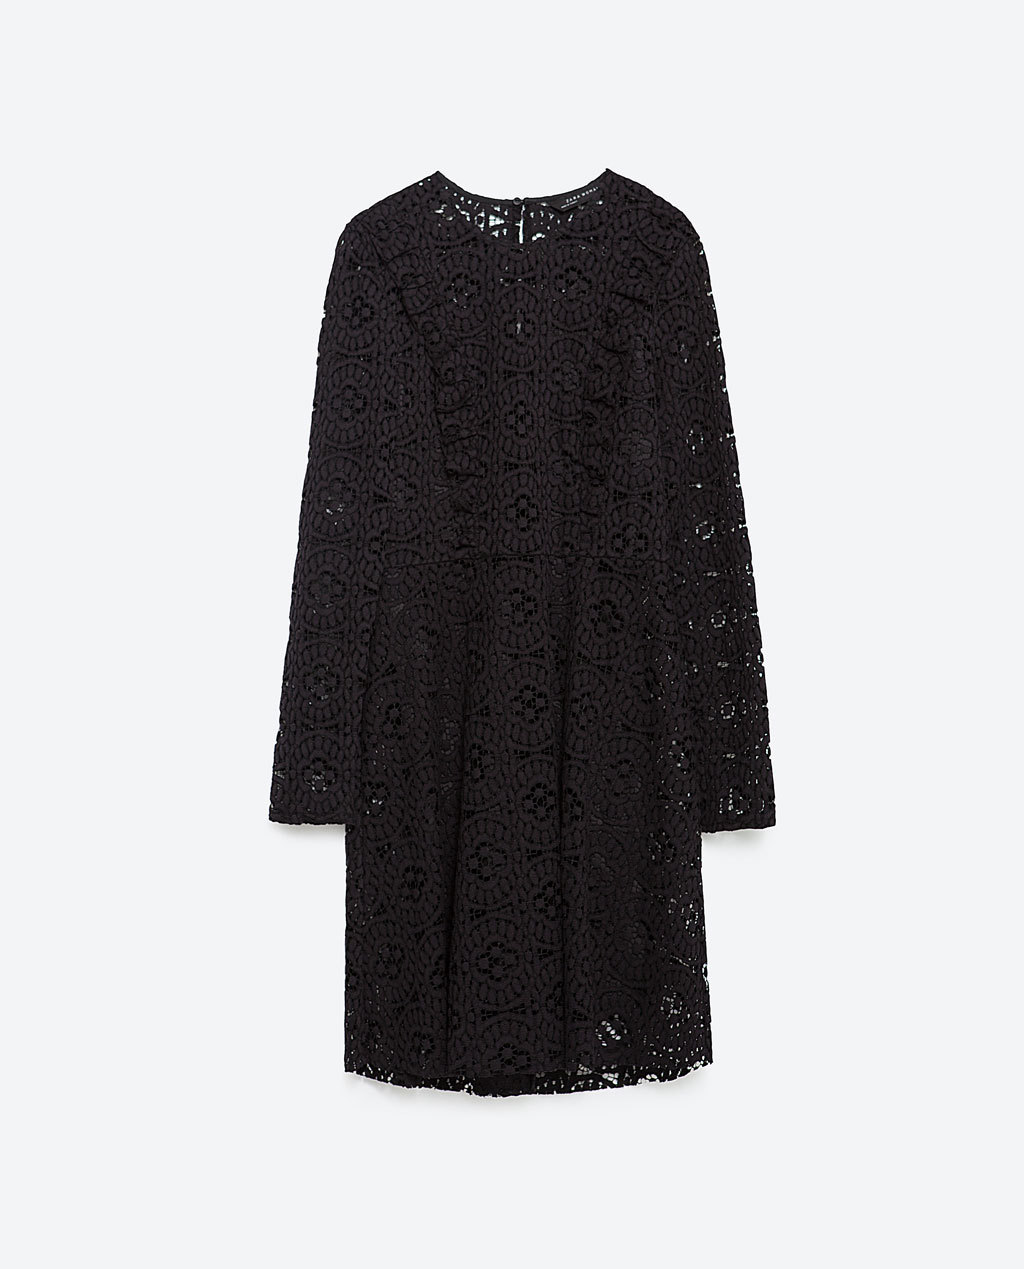 Lace Dress - style: shift; fit: tailored/fitted; predominant colour: black; occasions: evening, occasion; length: on the knee; fibres: cotton - mix; neckline: crew; back detail: keyhole/peephole detail at back; sleeve length: long sleeve; sleeve style: standard; texture group: lace; bust detail: bulky details at bust; pattern type: fabric; pattern size: standard; pattern: patterned/print; season: a/w 2015; wardrobe: event